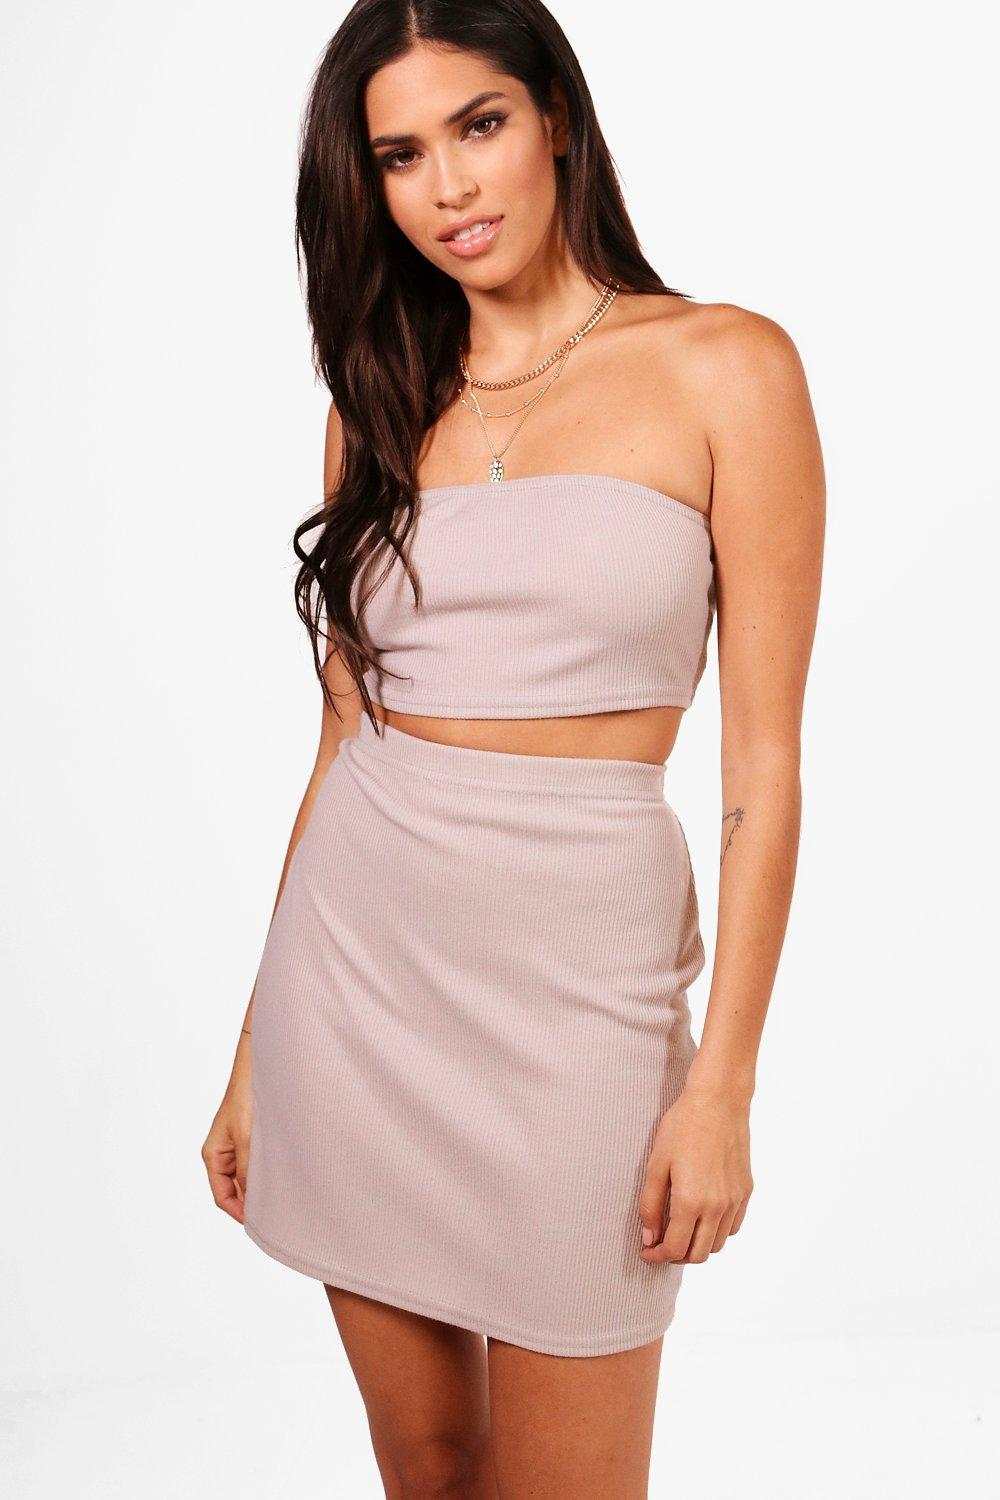 Boohoo Petite Bandeau Mini Bandage Skirt Co-Ord Release Dates Cheap Price Discount Countdown Package Sale From China Exclusive Cheap Price QmdP7YeNF